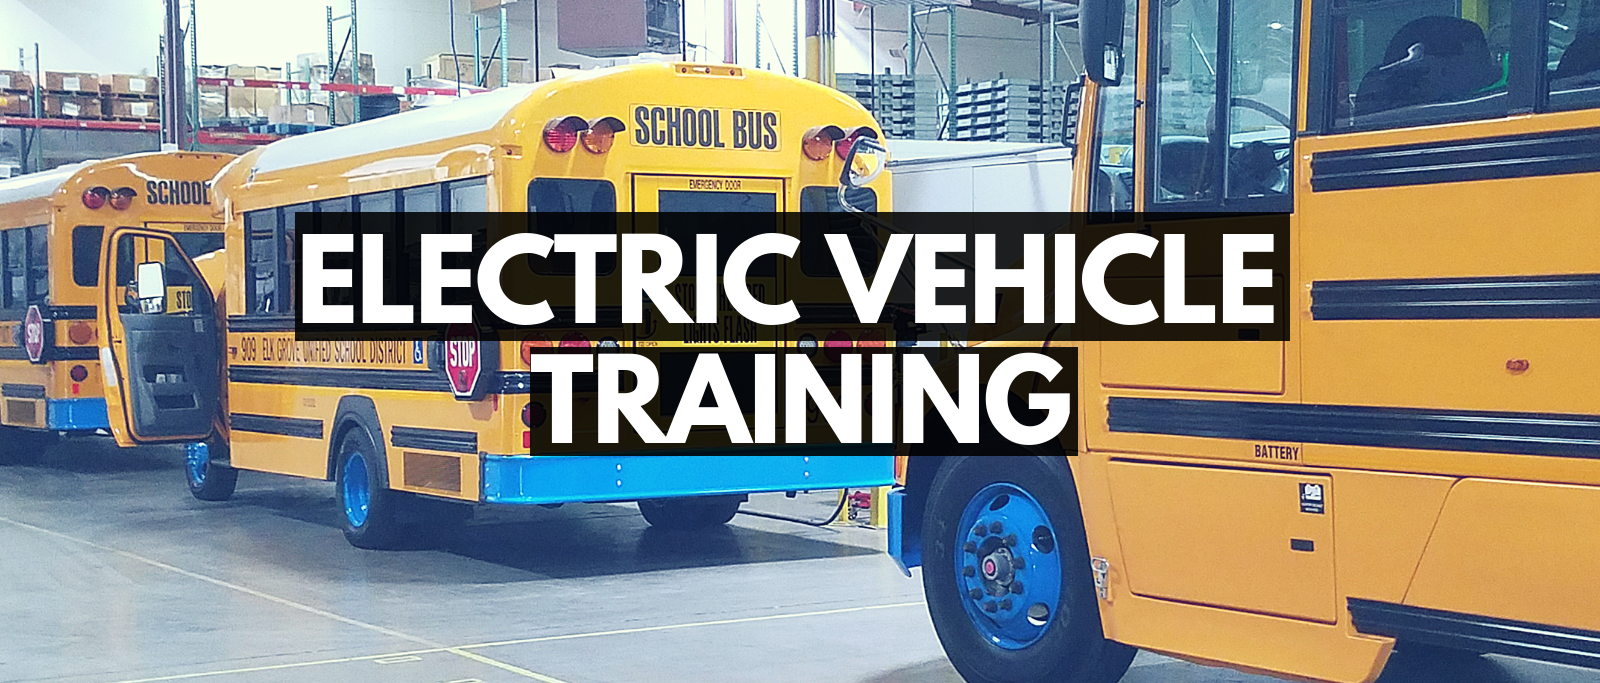 electricvehicletraining.png